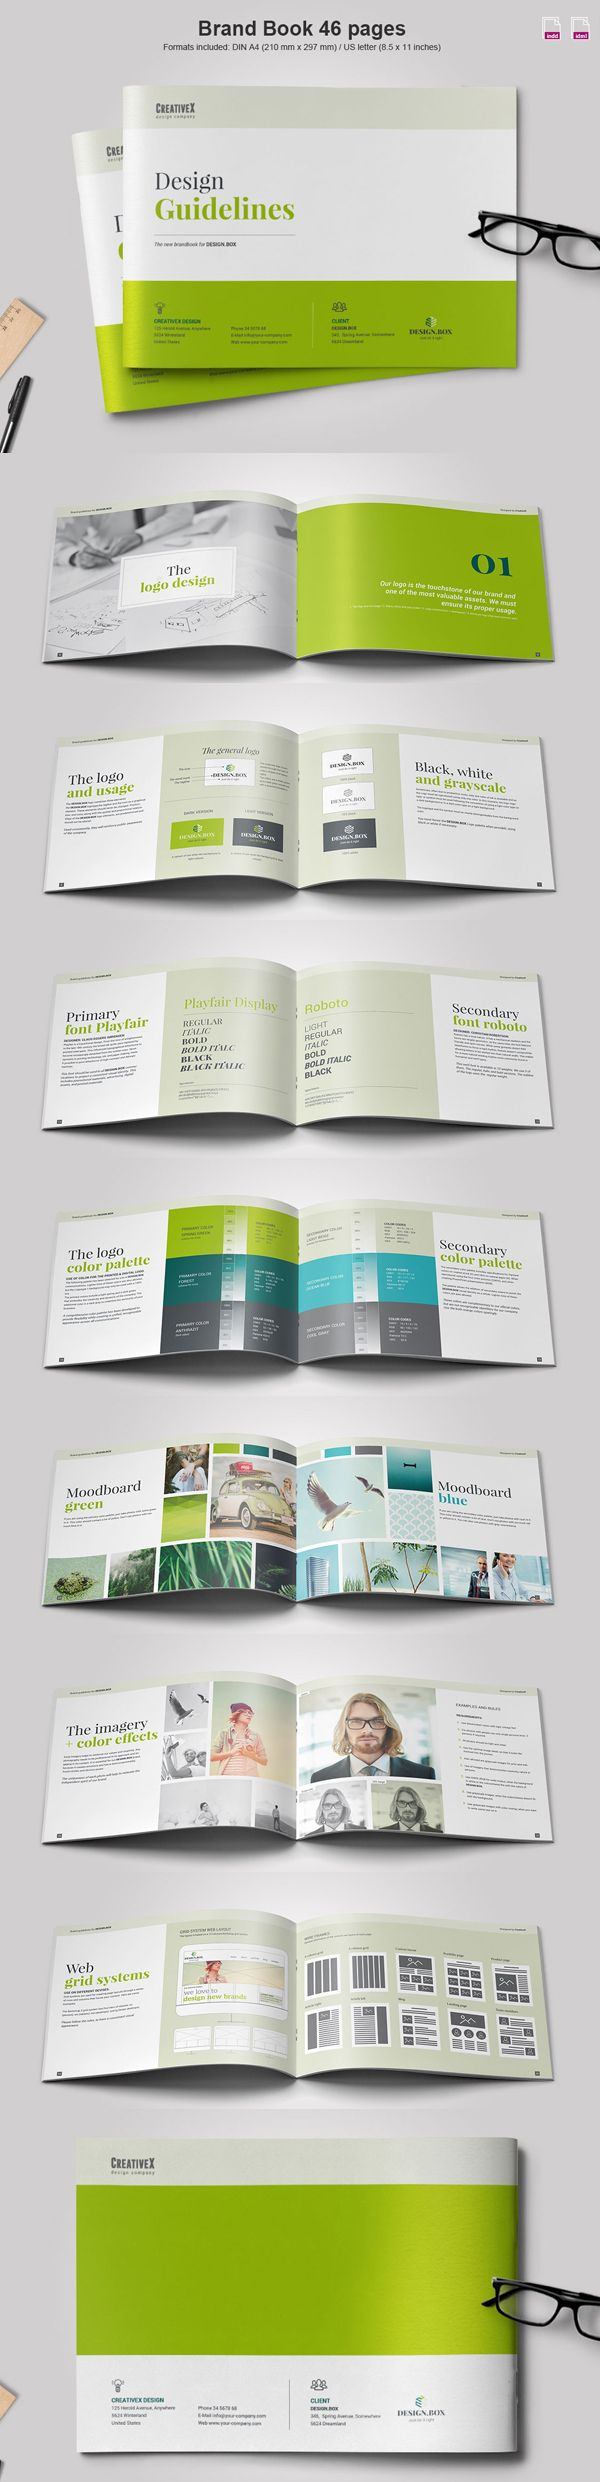 Landscape Brand Book Brochure Template                                                                                                                                                                                 More